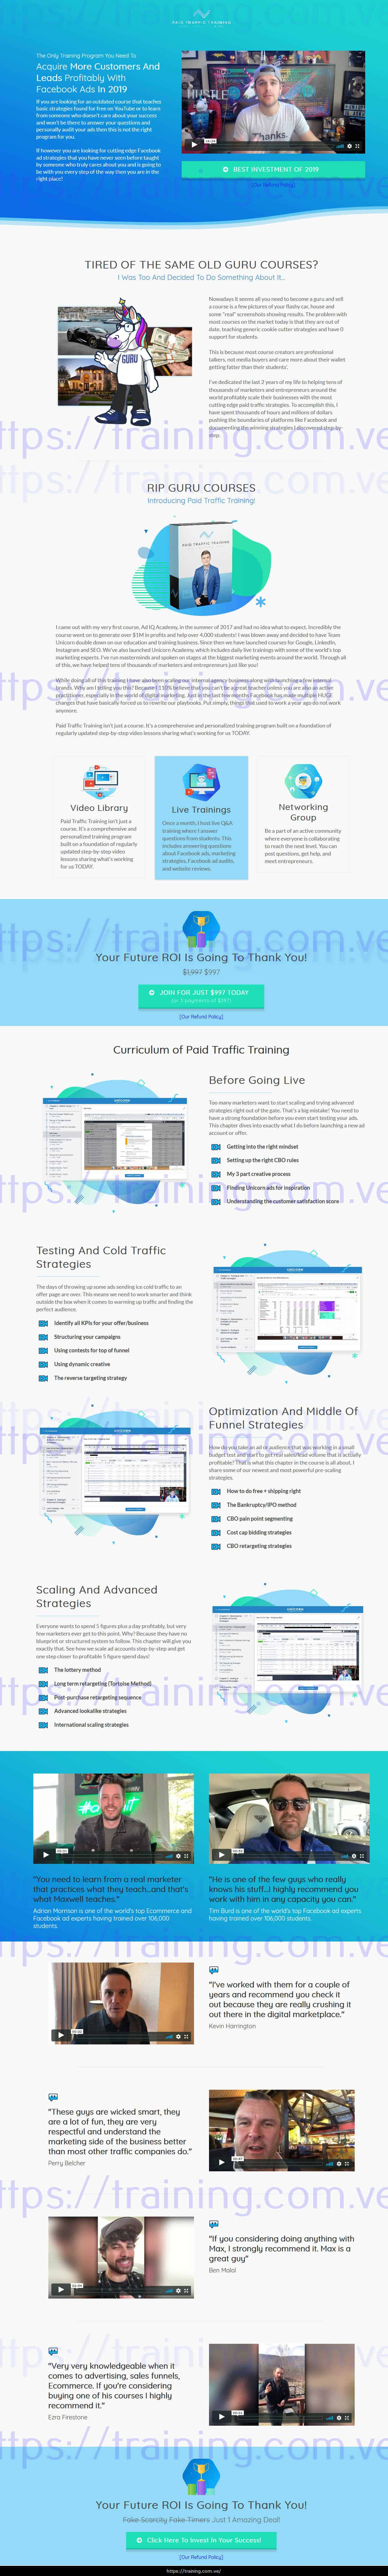 Paid Traffic 2.0 Training by Maxwell Finn sales page